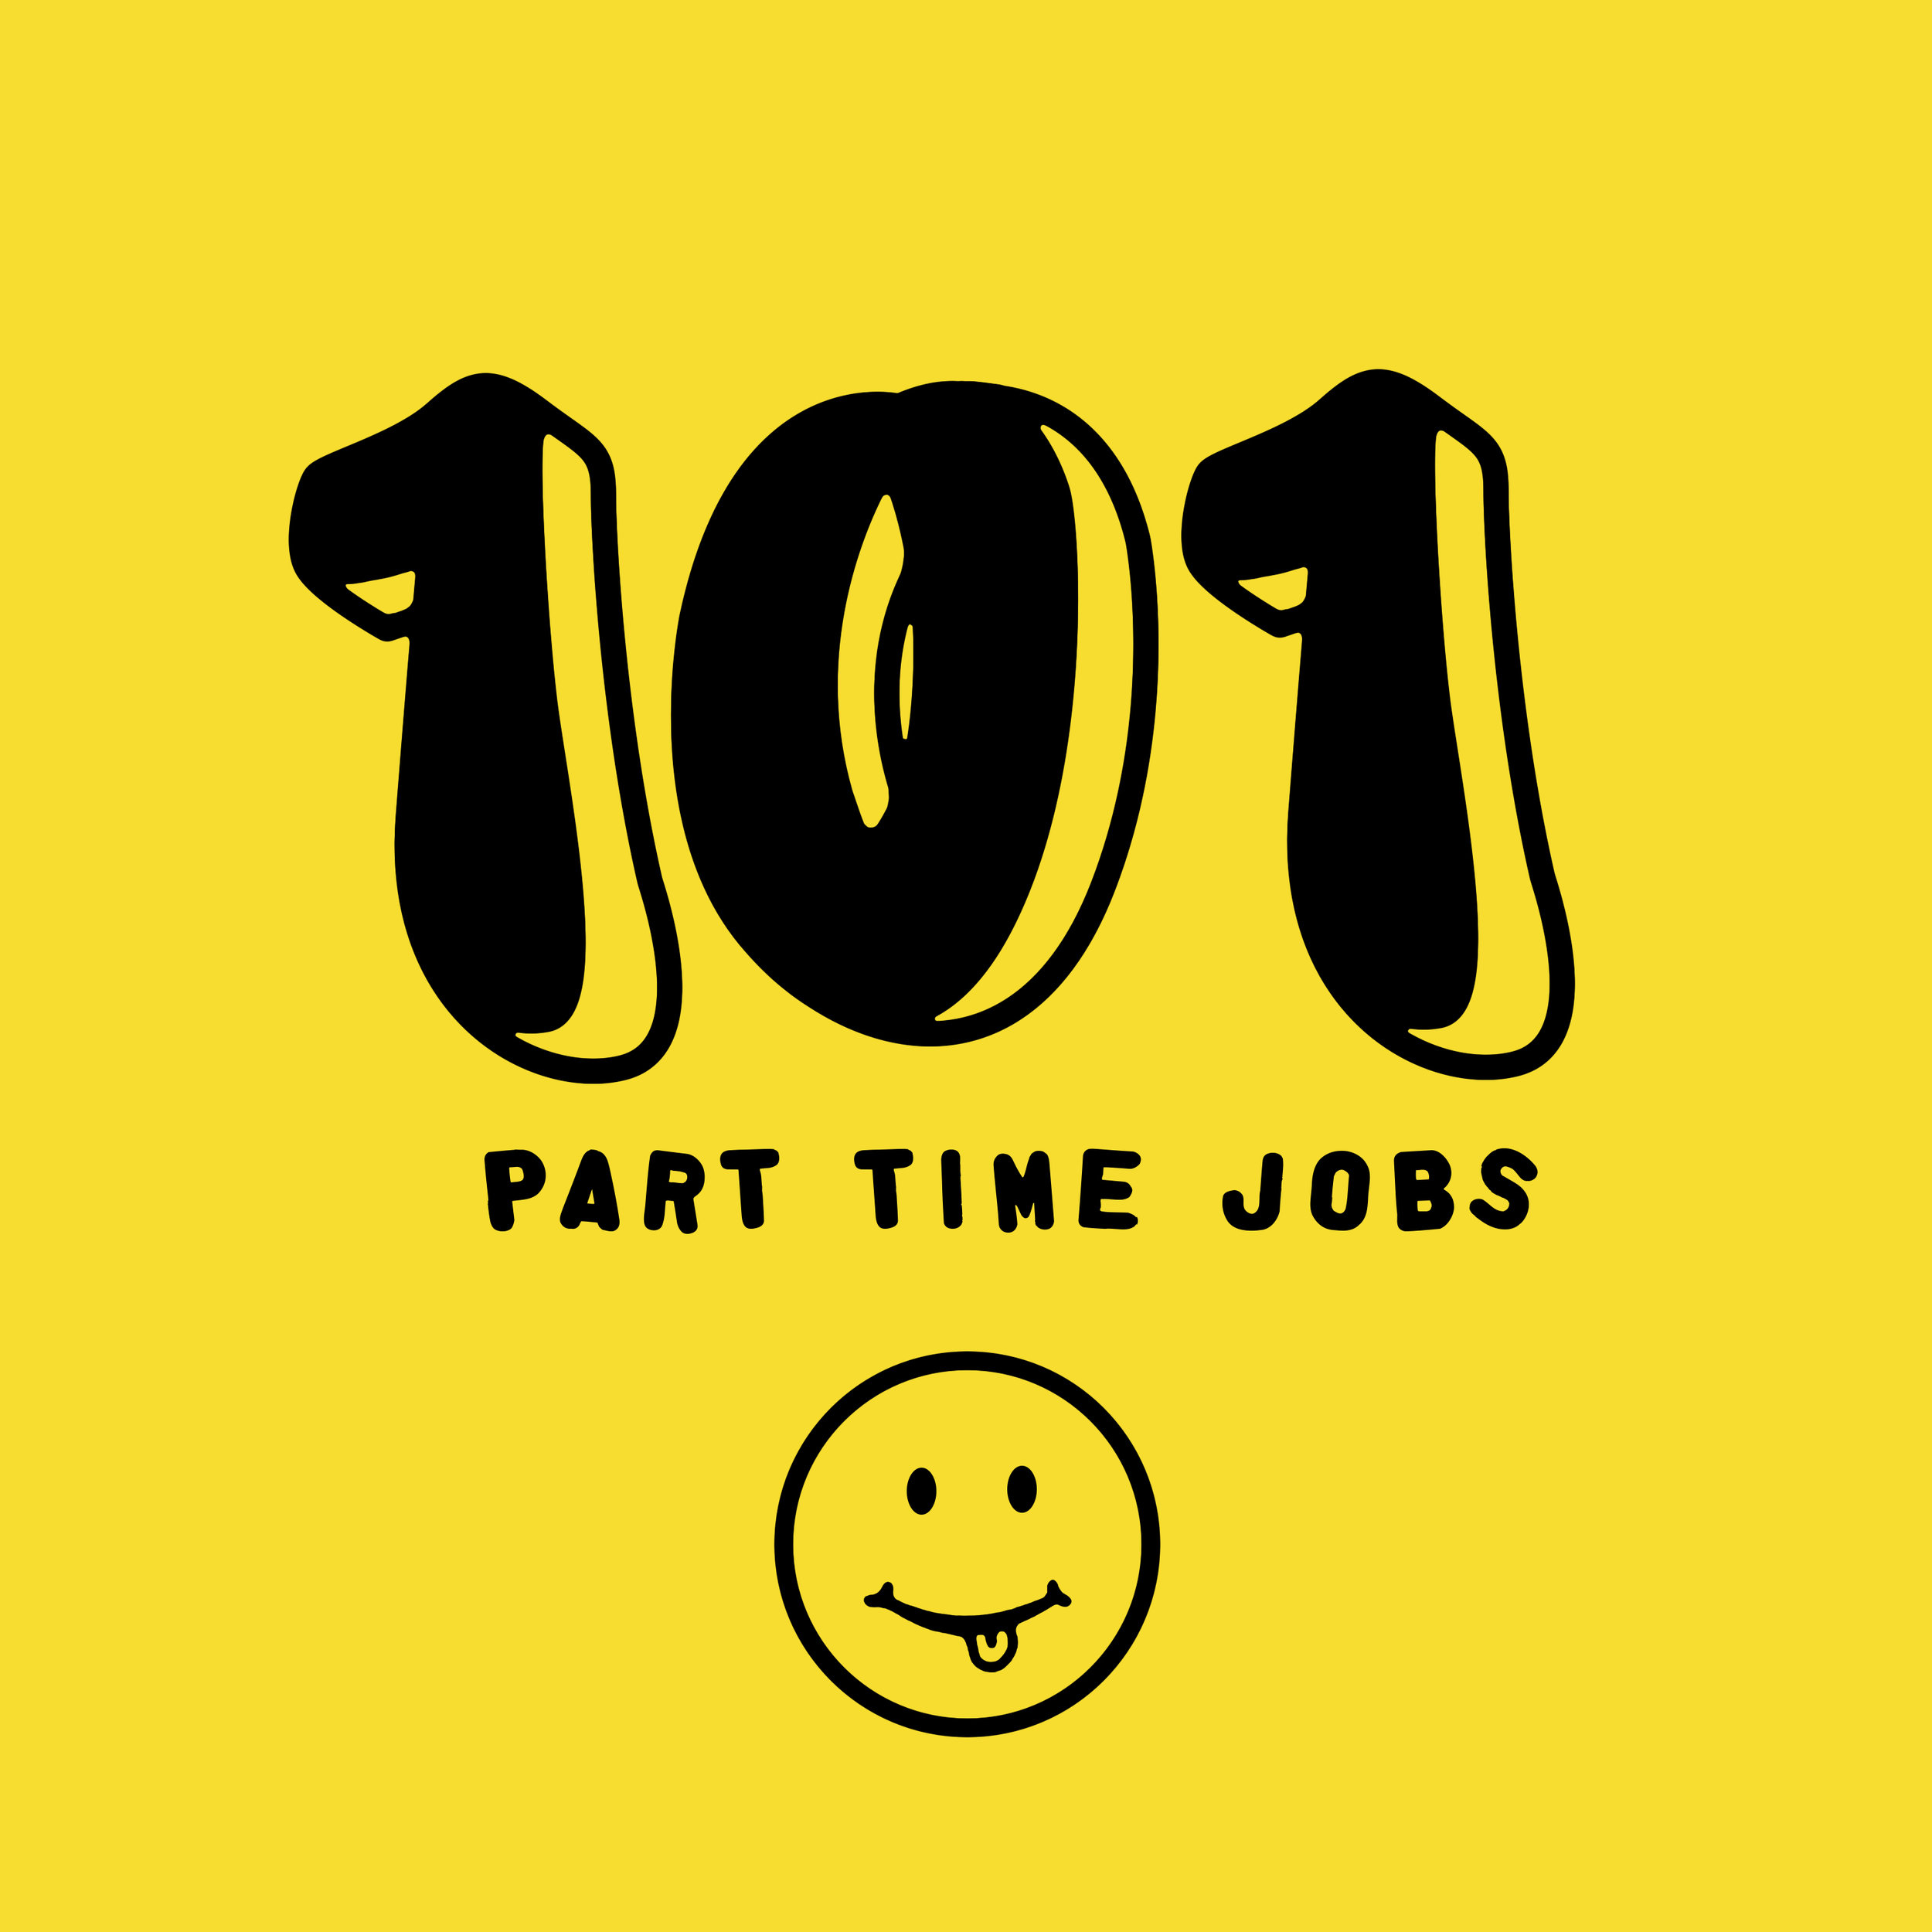 Find 101 Part Time Jobs on iTunes